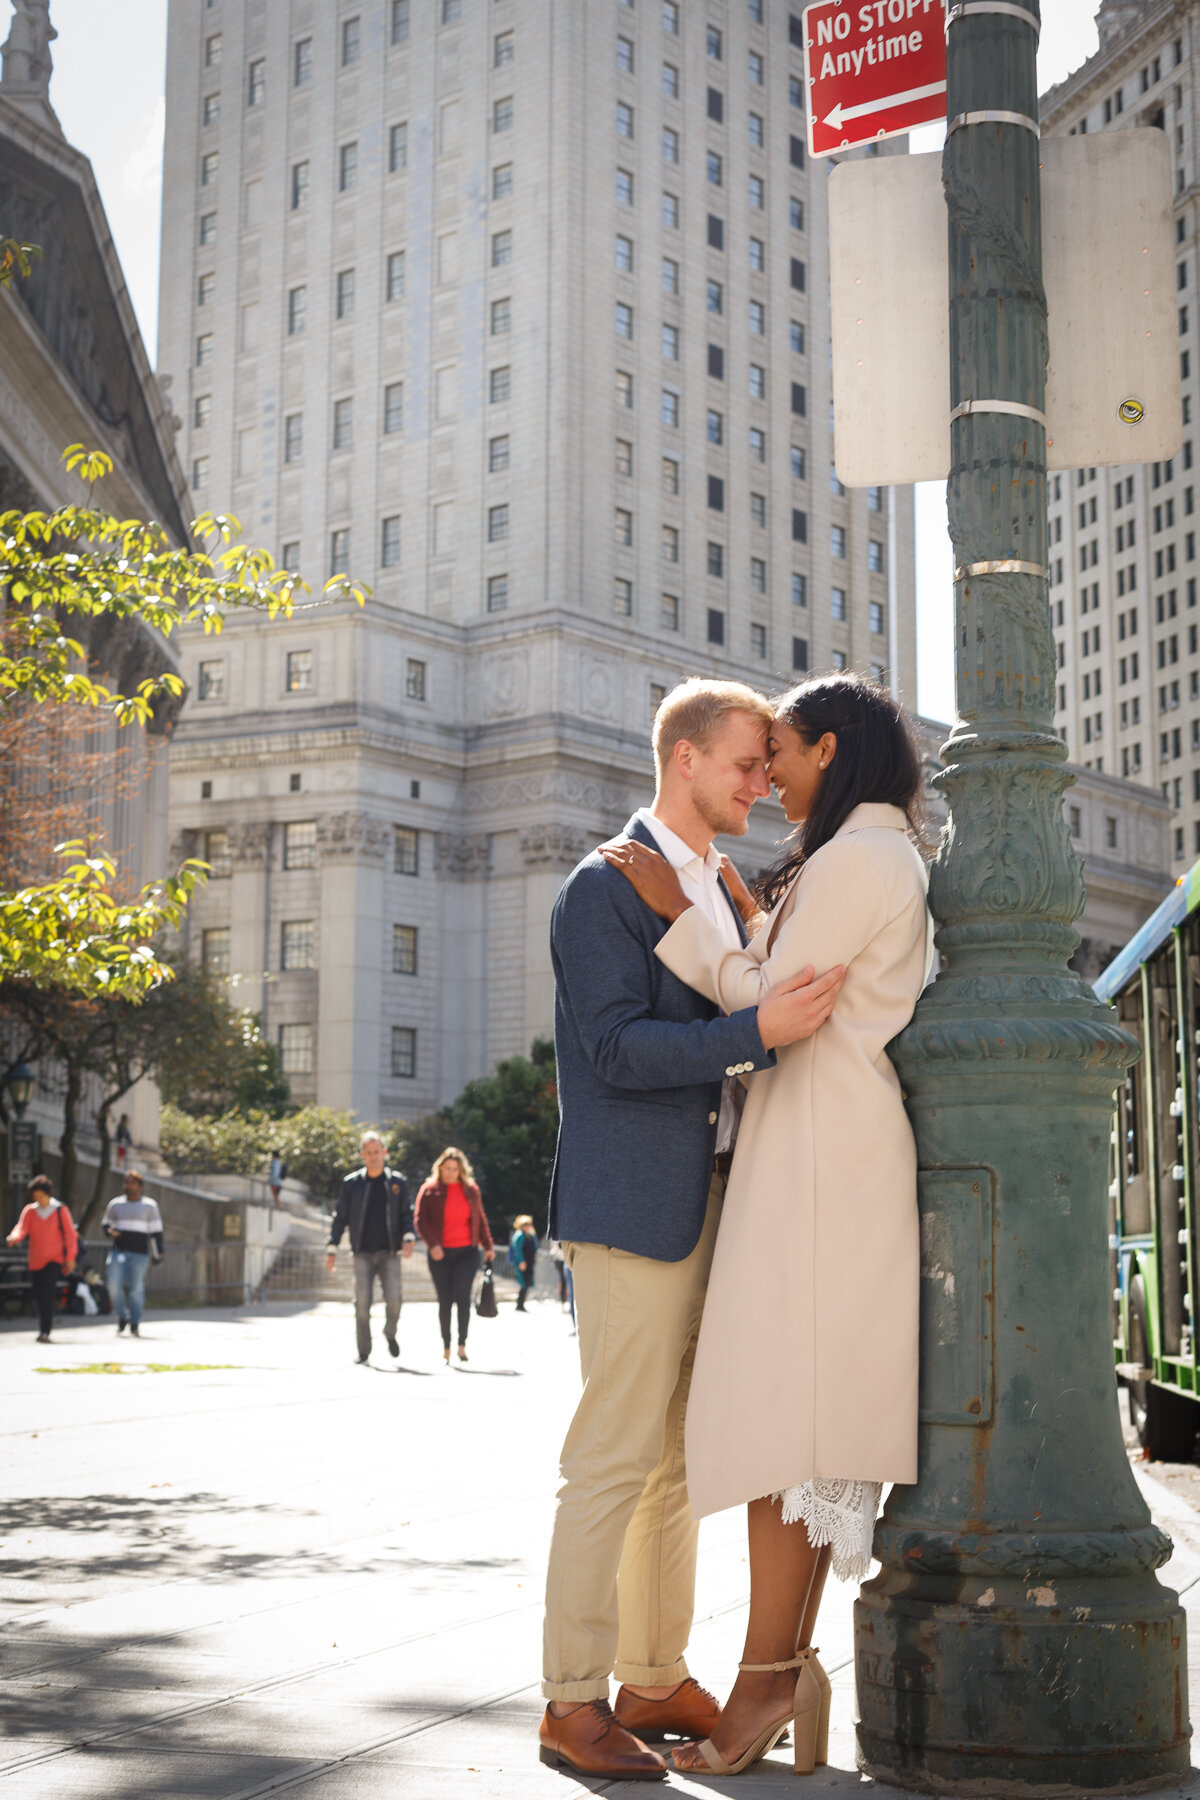 NYC Manhattan City Hall Wedding _ Jonathan Heisler _ 10042019 _0032.jpg